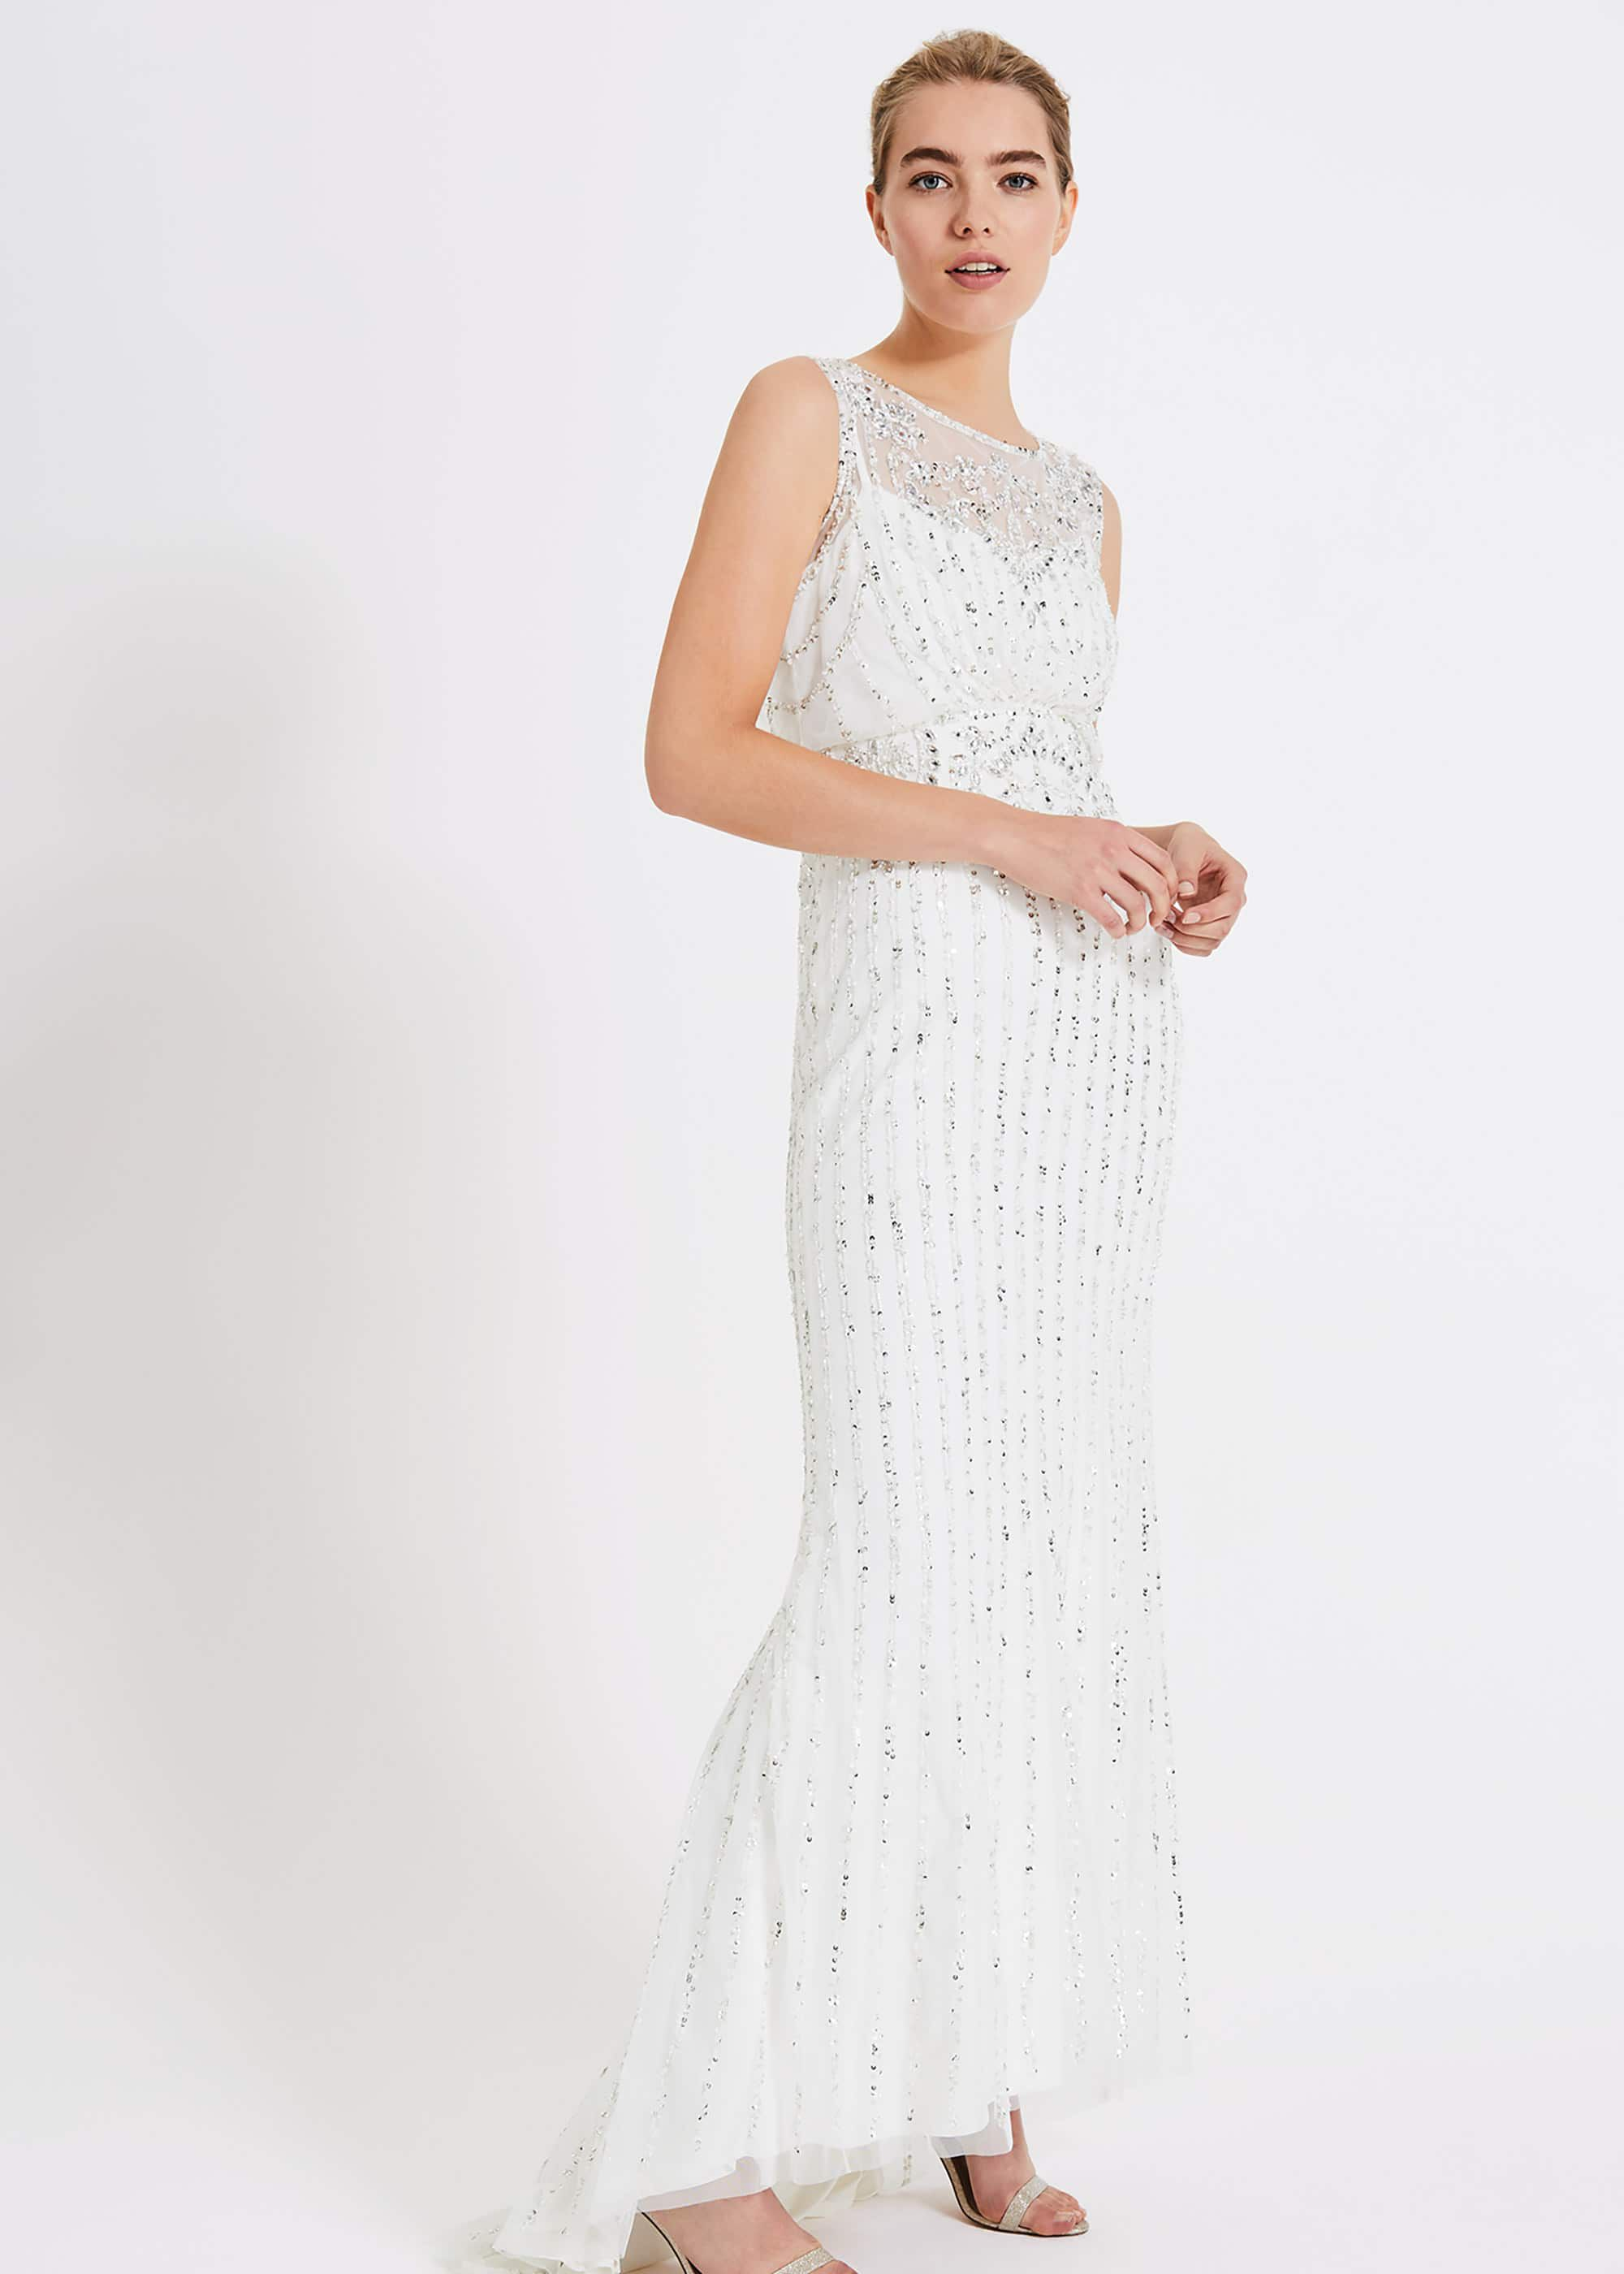 1930s Dresses, Shoes, Lingerie, Clothing UK Phase Eight Milly Beaded Wedding Dress White Wedding £595.00 AT vintagedancer.com